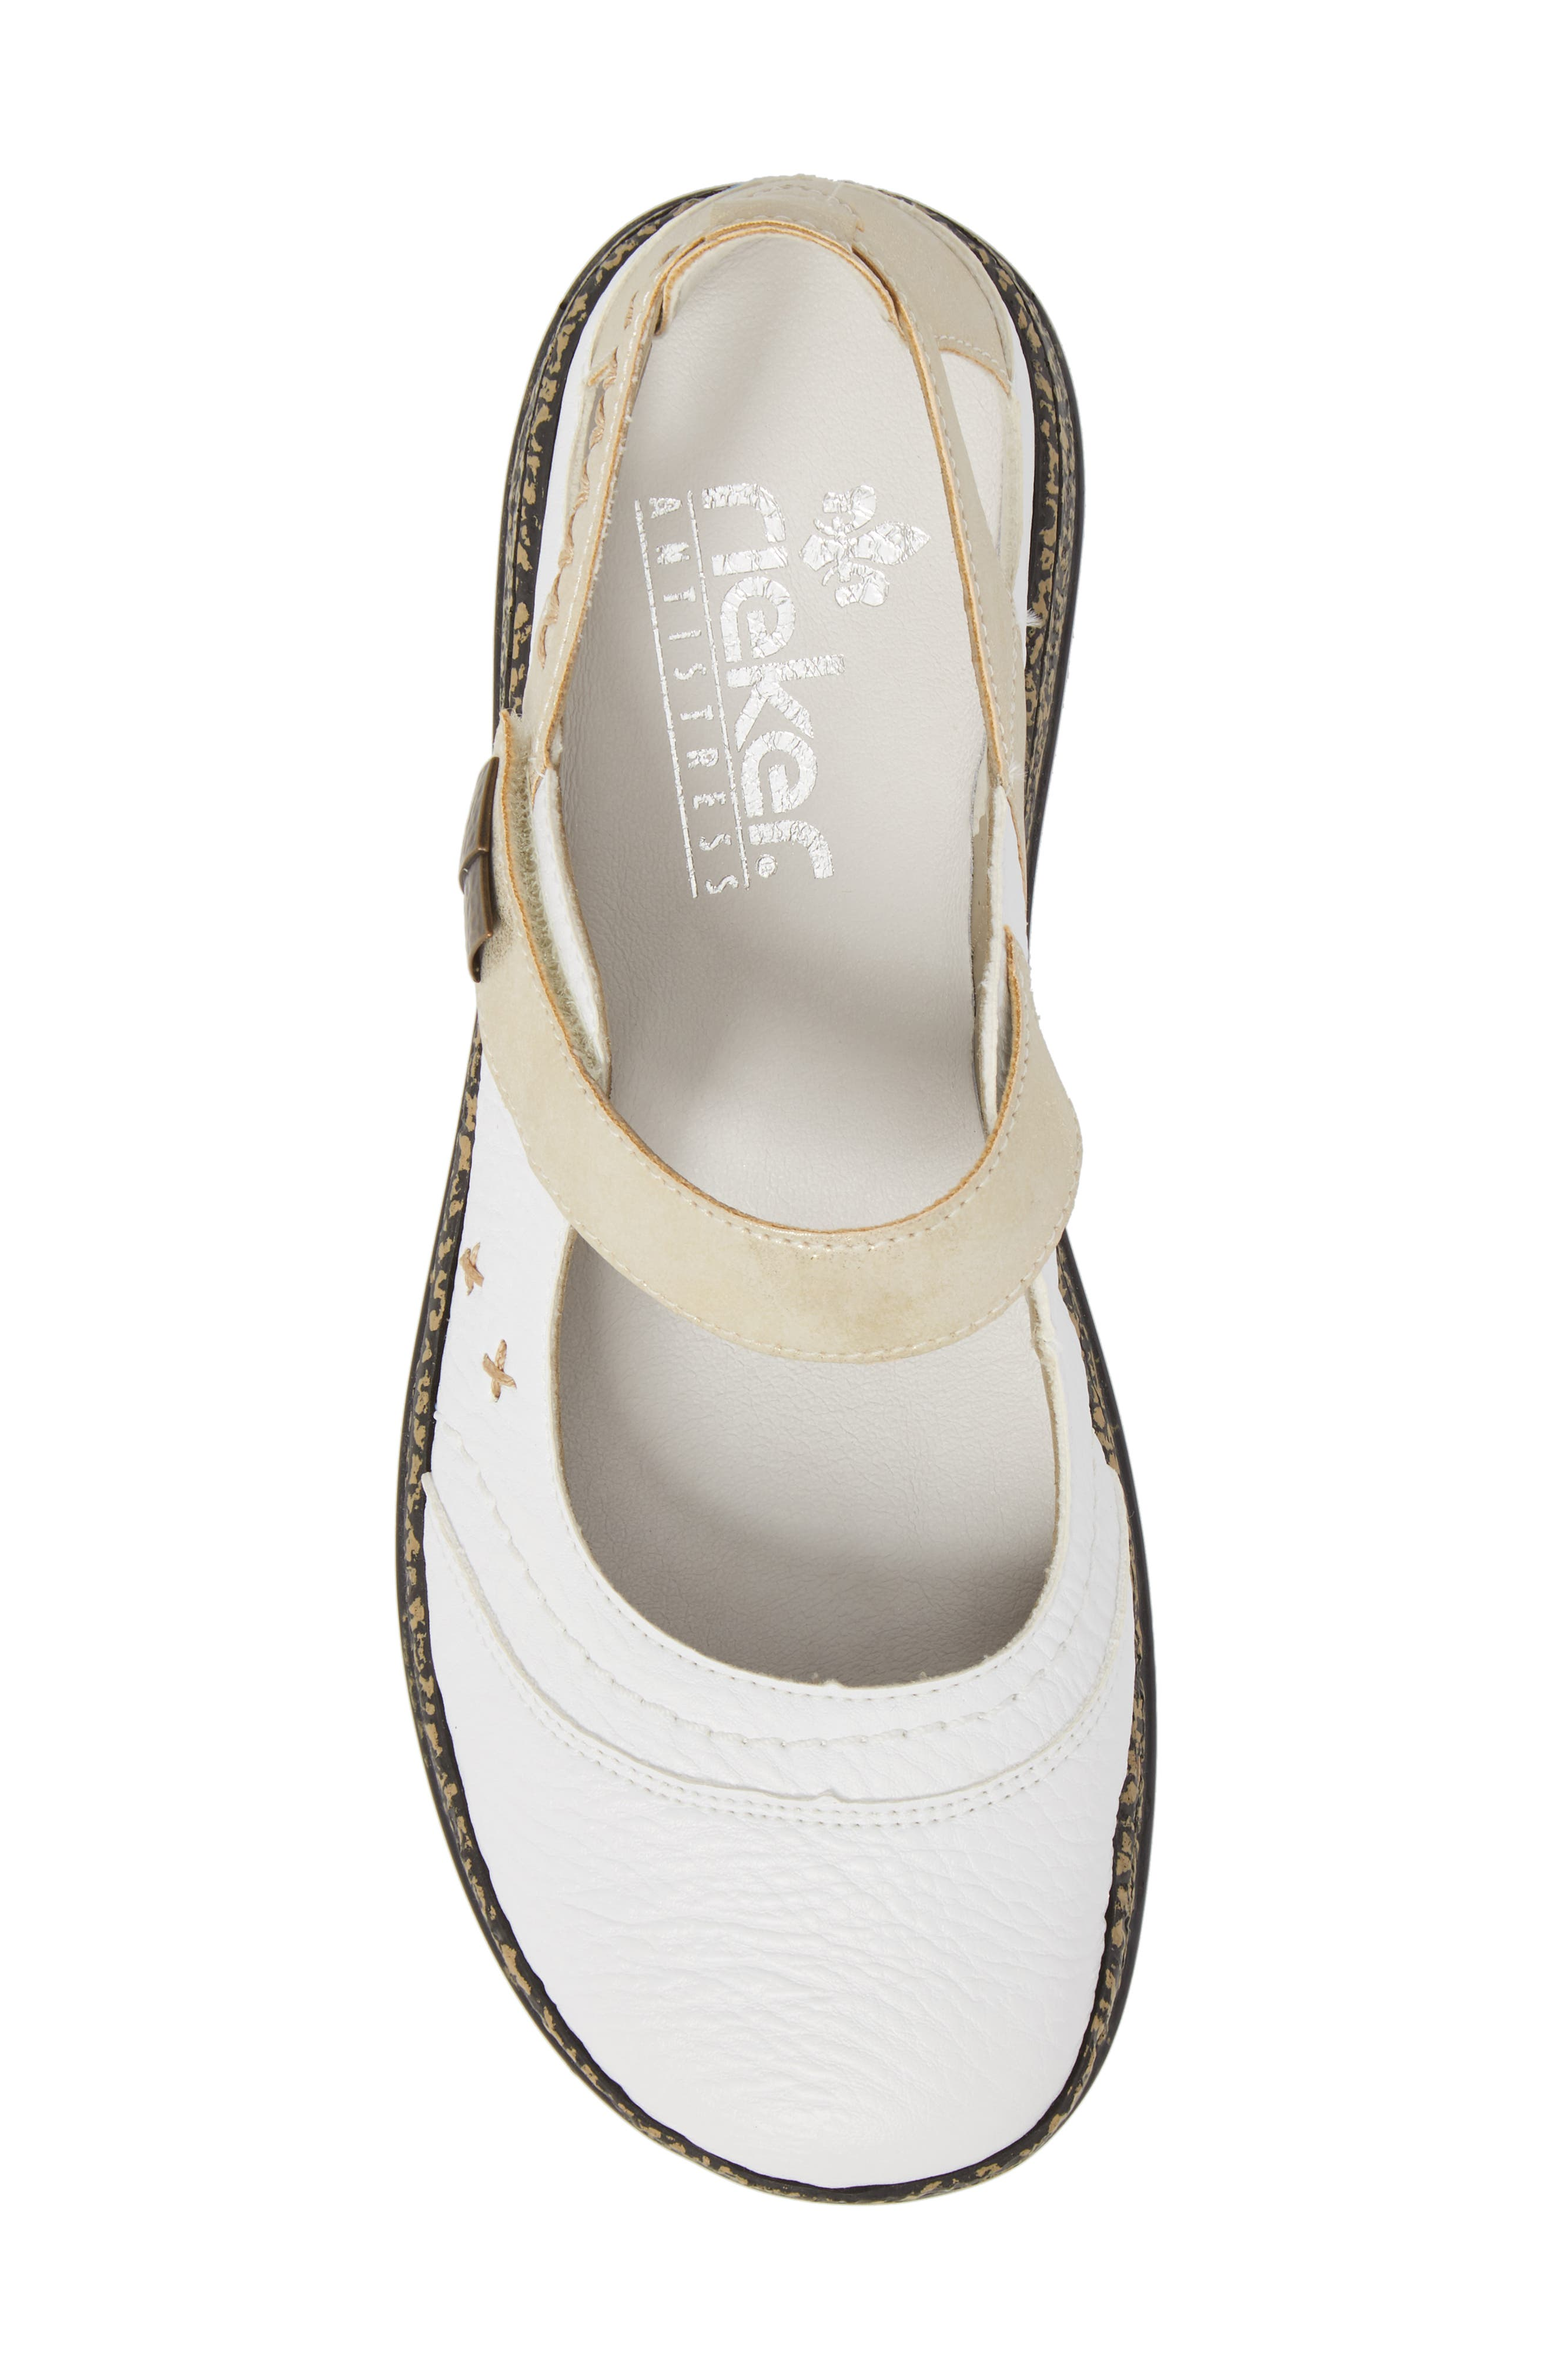 Daisy 78 Mary Jane Flat,                             Alternate thumbnail 5, color,                             White/ Gold Synthetic Leather